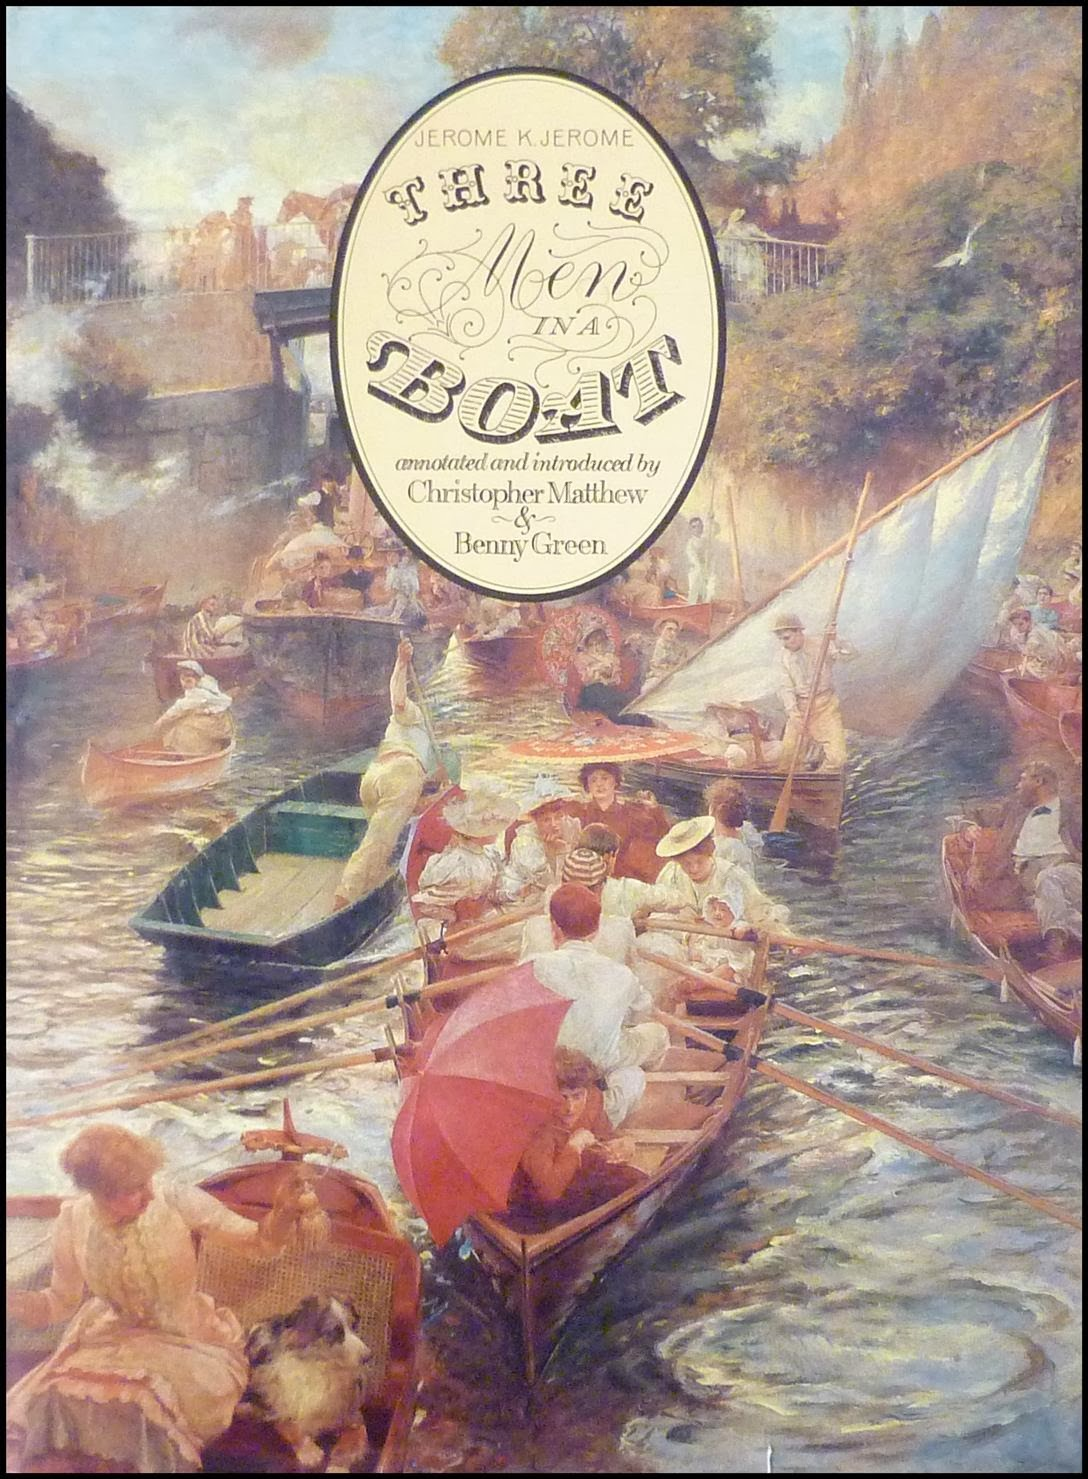 three men in boat book review The story begins with the narrator (j), harris, and george discussing how  unhealthy they have been feeling lately the reader quickly figures out that j,  and.